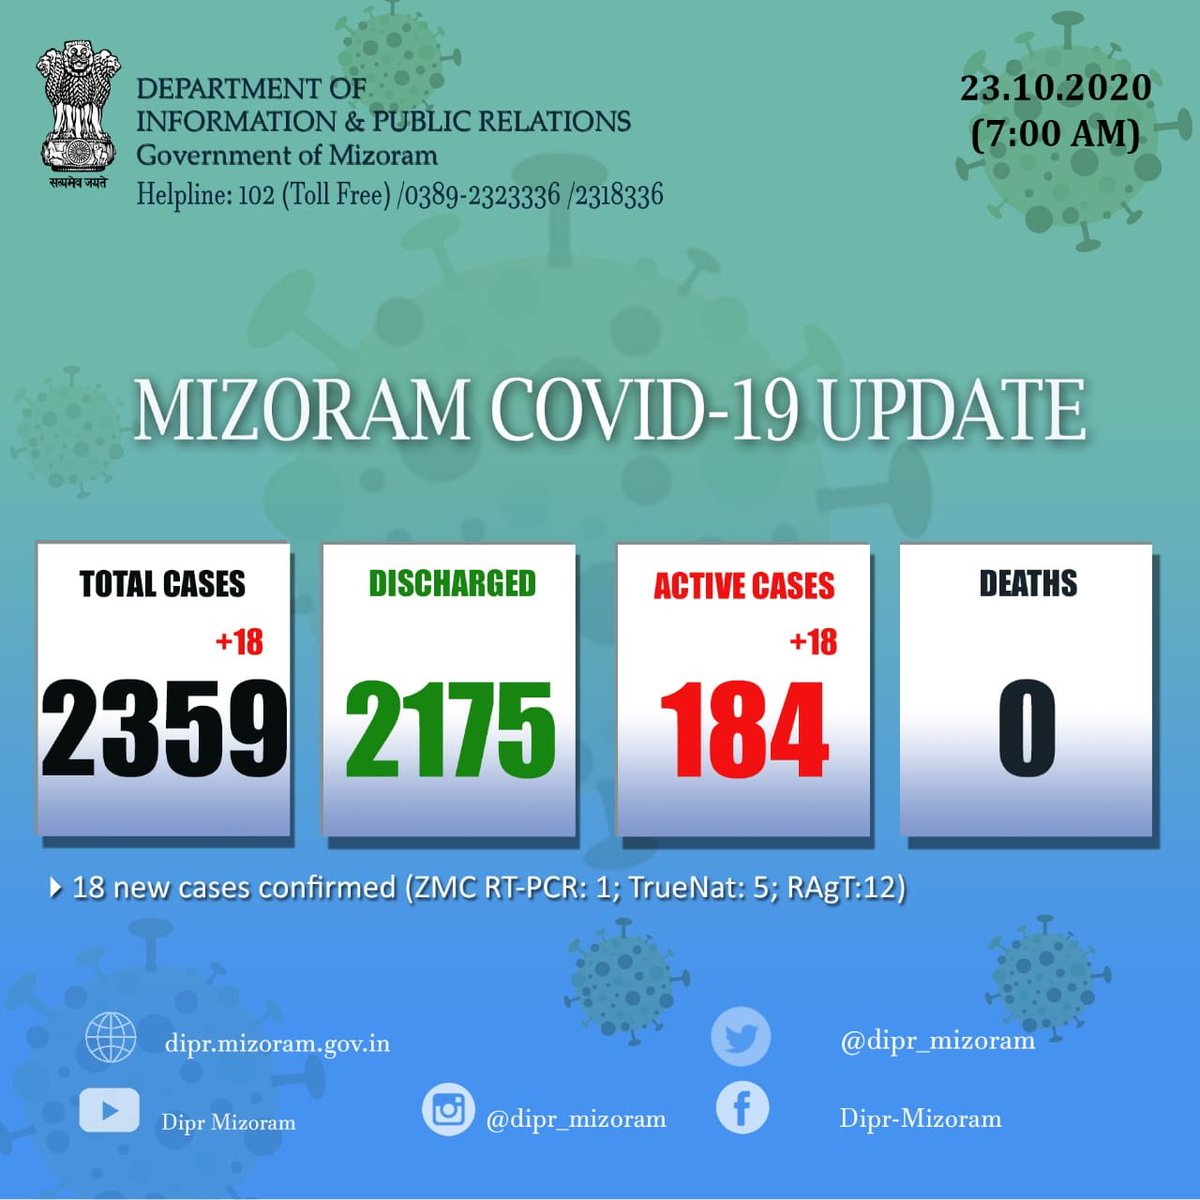 ✳️ #Mizoram #Covid_19 status 7:00 AM update | 23 OCTOBER 2020  📌 18 new Cases detected out of 1,273 new samples tested.  ➡️The total number of positive cases in Mizoram is 2,359 including 2,175 cured/discharged cases and 184 active cases. #Covid19India https://t.co/ut0OPitba3